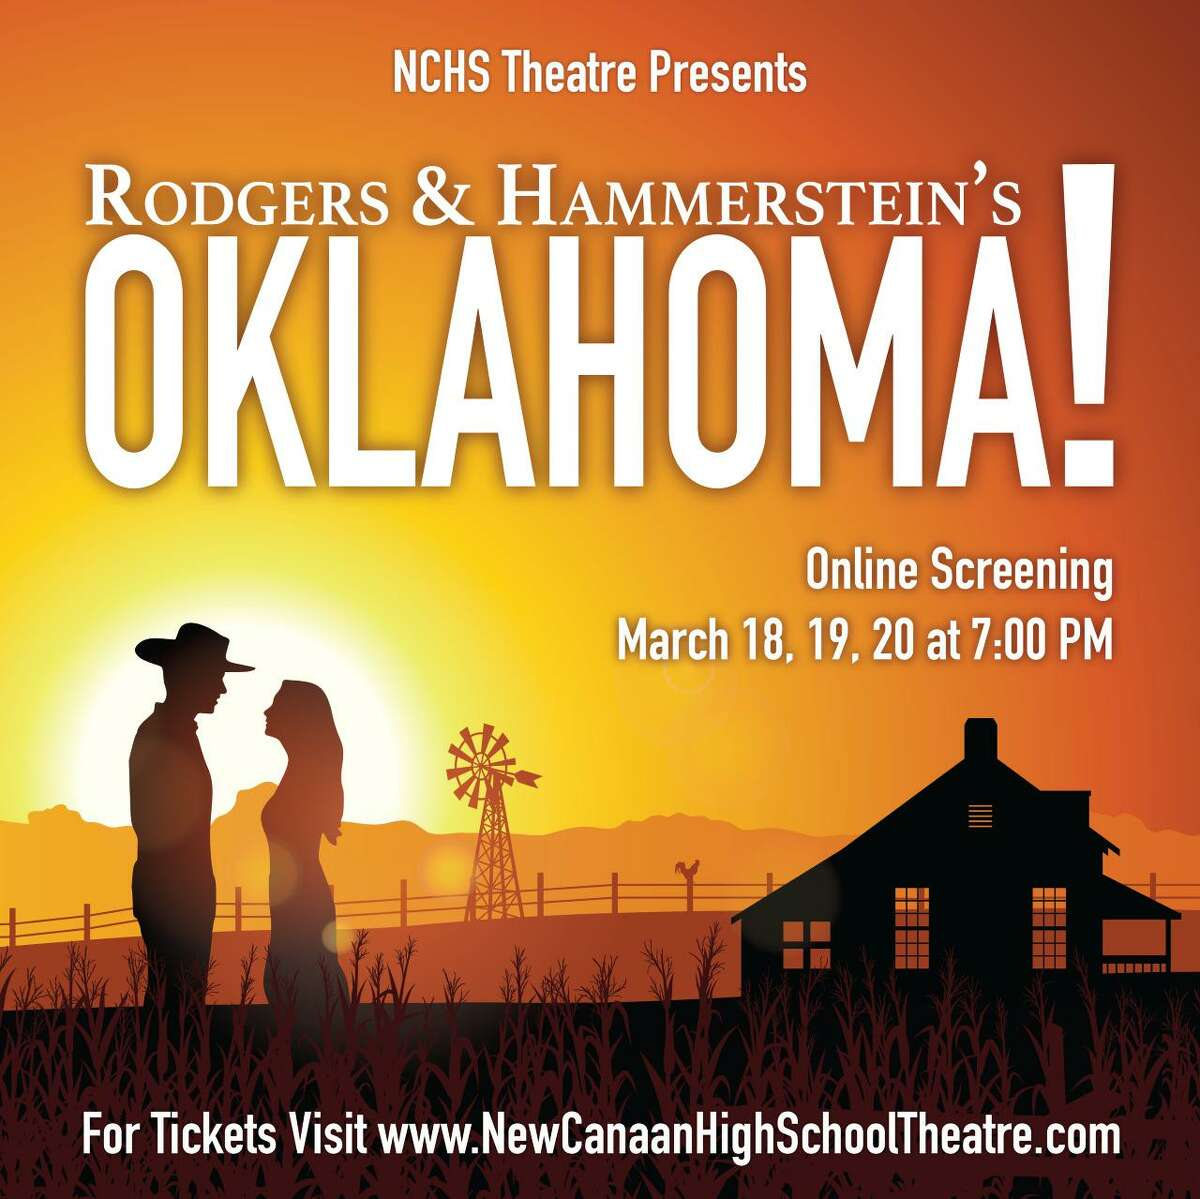 The New Canaan High School Theatre Department is presenting Rodgers & Hammerstein's musical